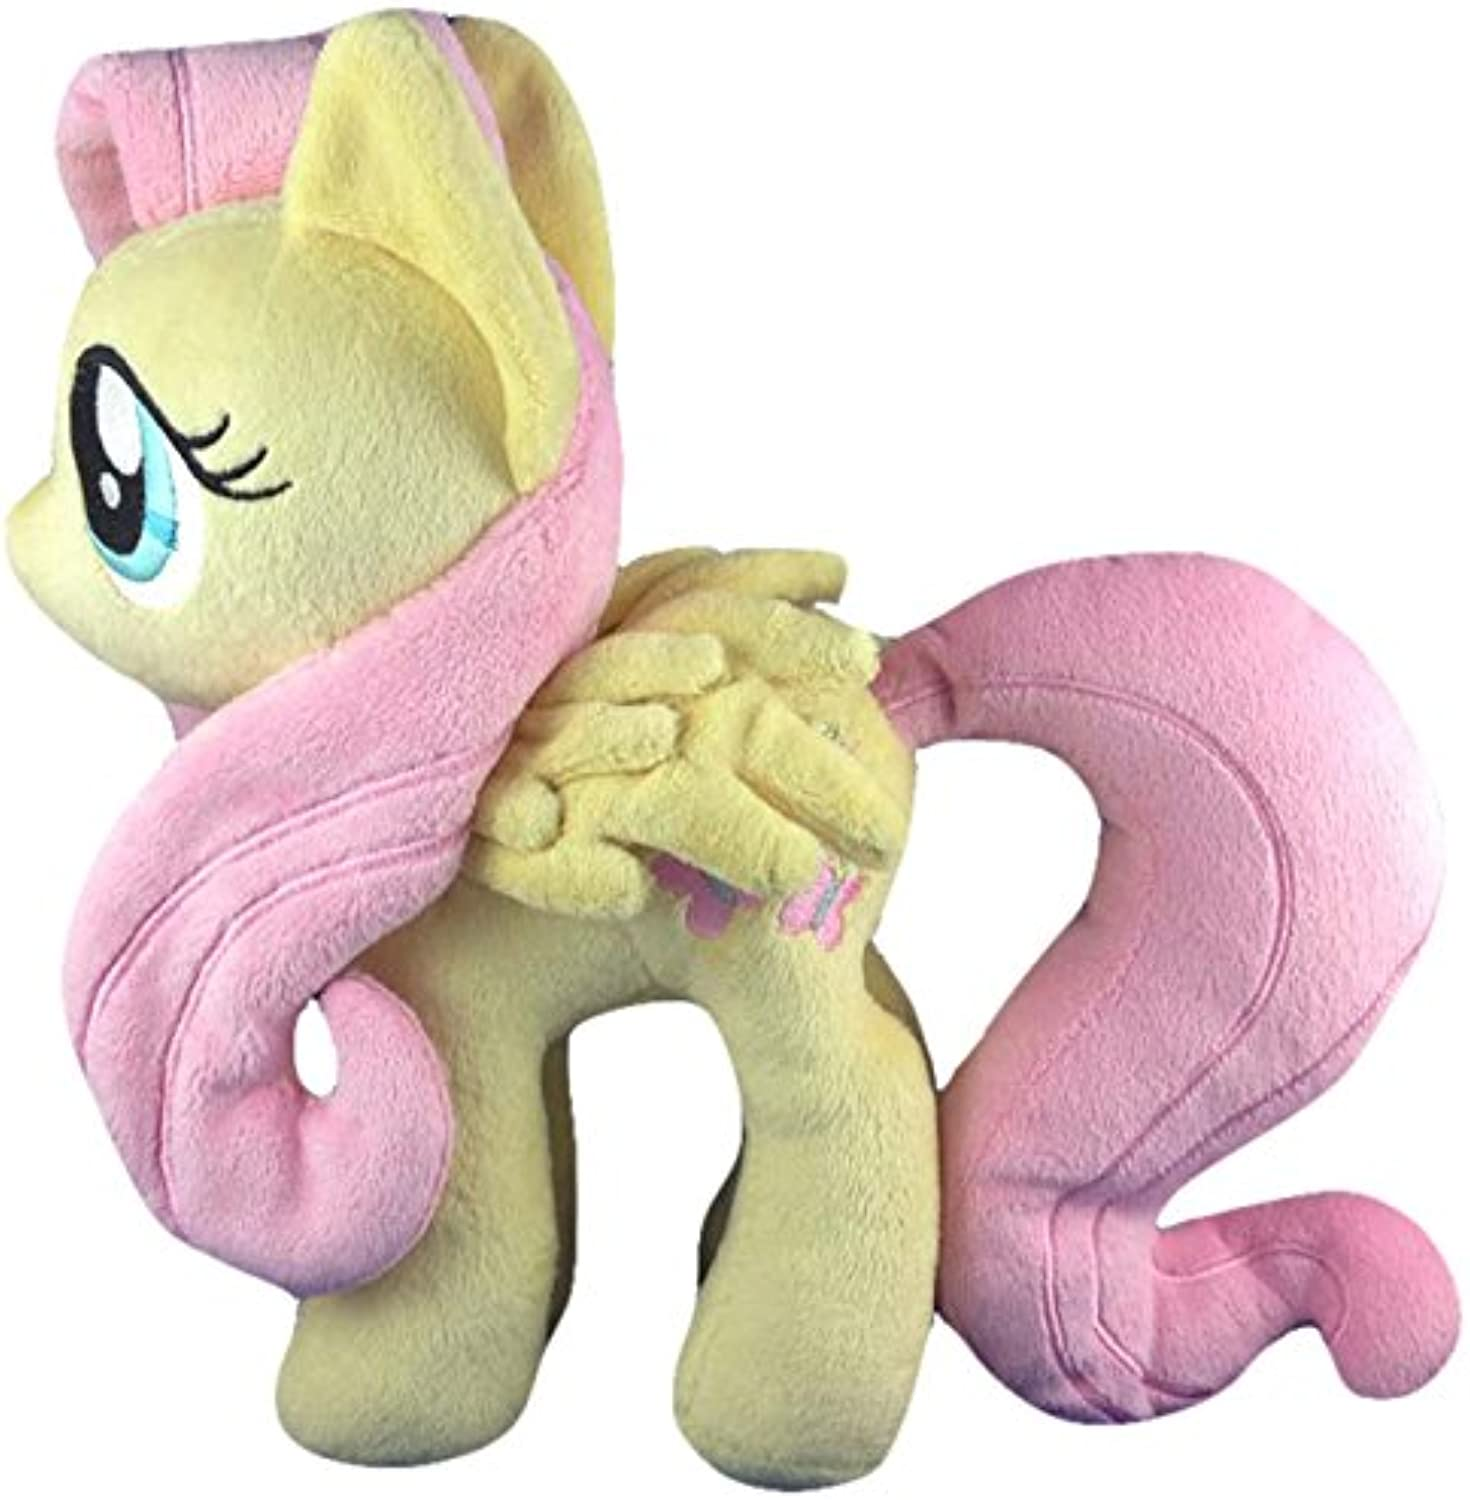 Hay más marcas de productos de alta calidad. 4th Dimension My Little Little Little Pony Fluttershy 12 Plush by 4th Dimension  lo último